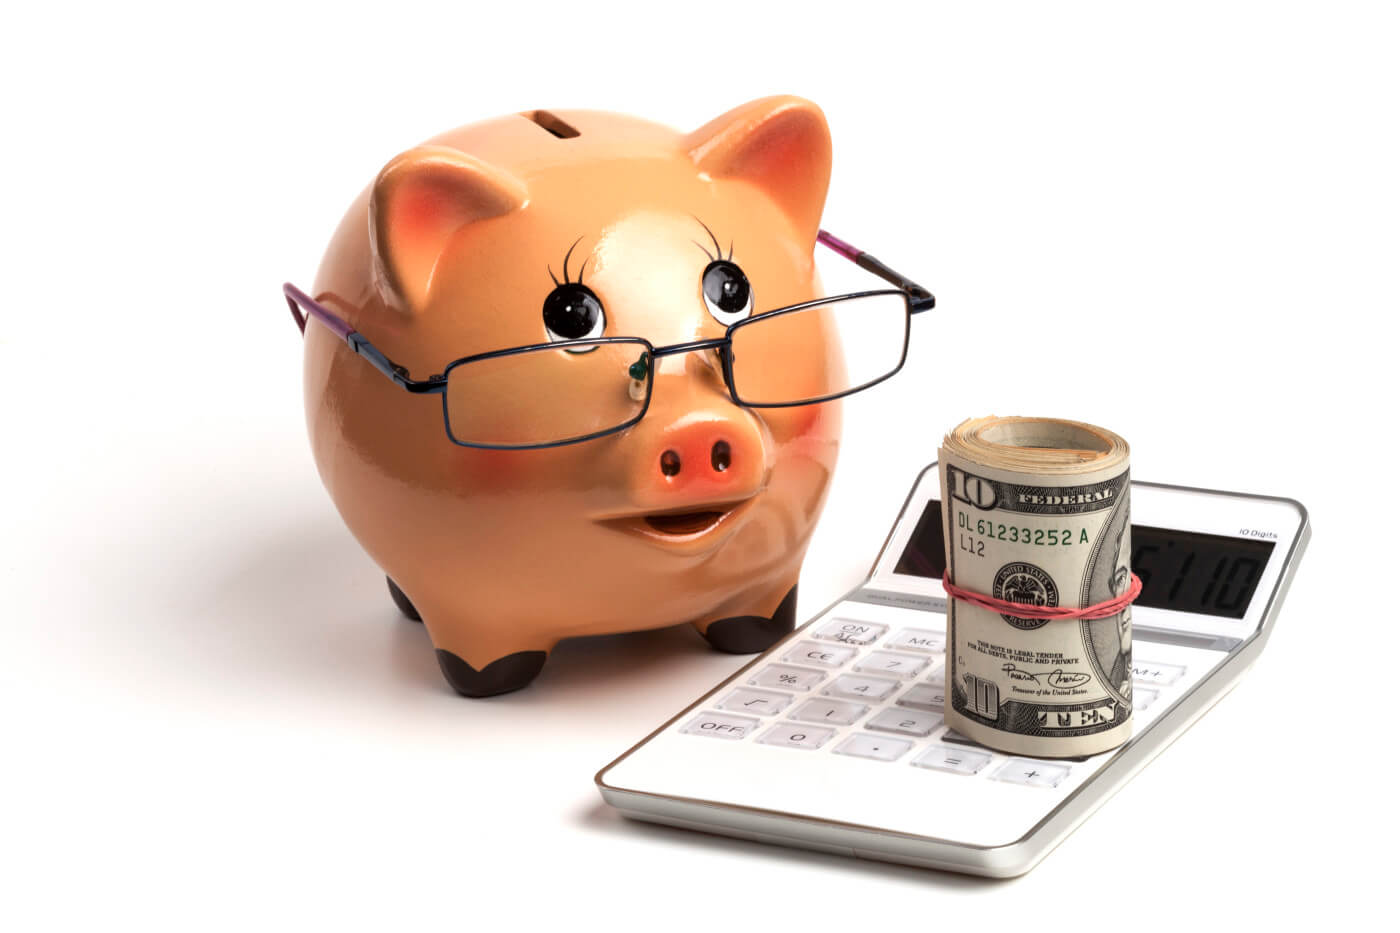 piggy bank with money and white calculator